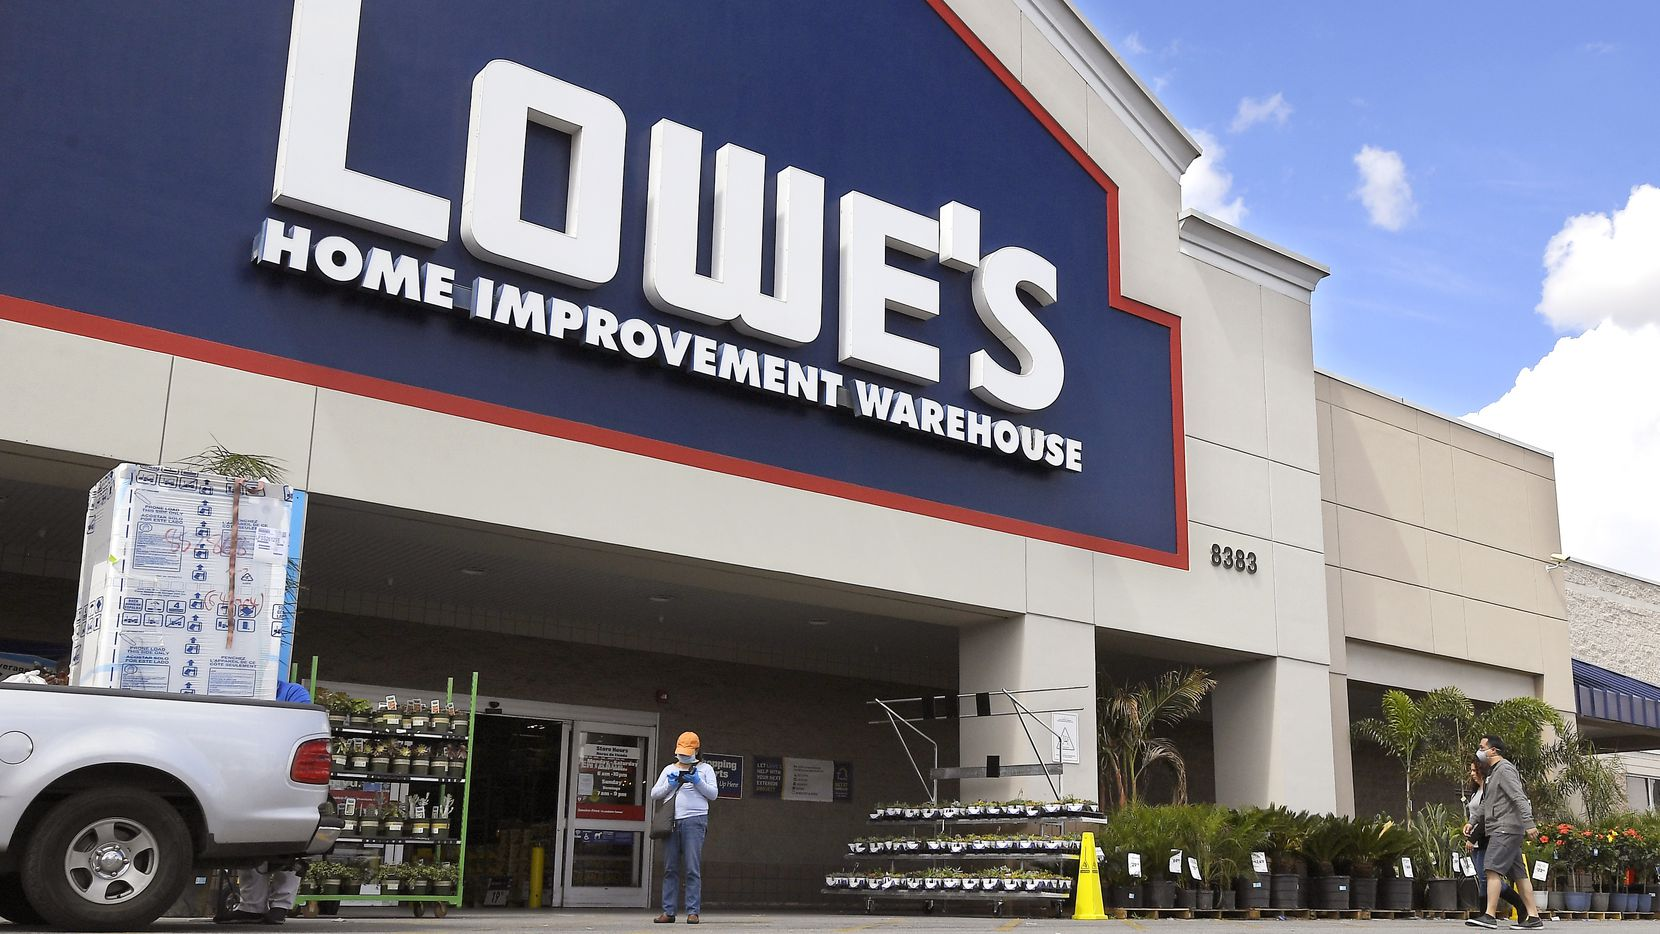 In this March 22, 2020 file photo, customers wearing masks walk into a Lowe's home improvement store in the Canoga Park section of Los Angeles. A spokesman for the company said it was opening an outlet store in Irving later this year.